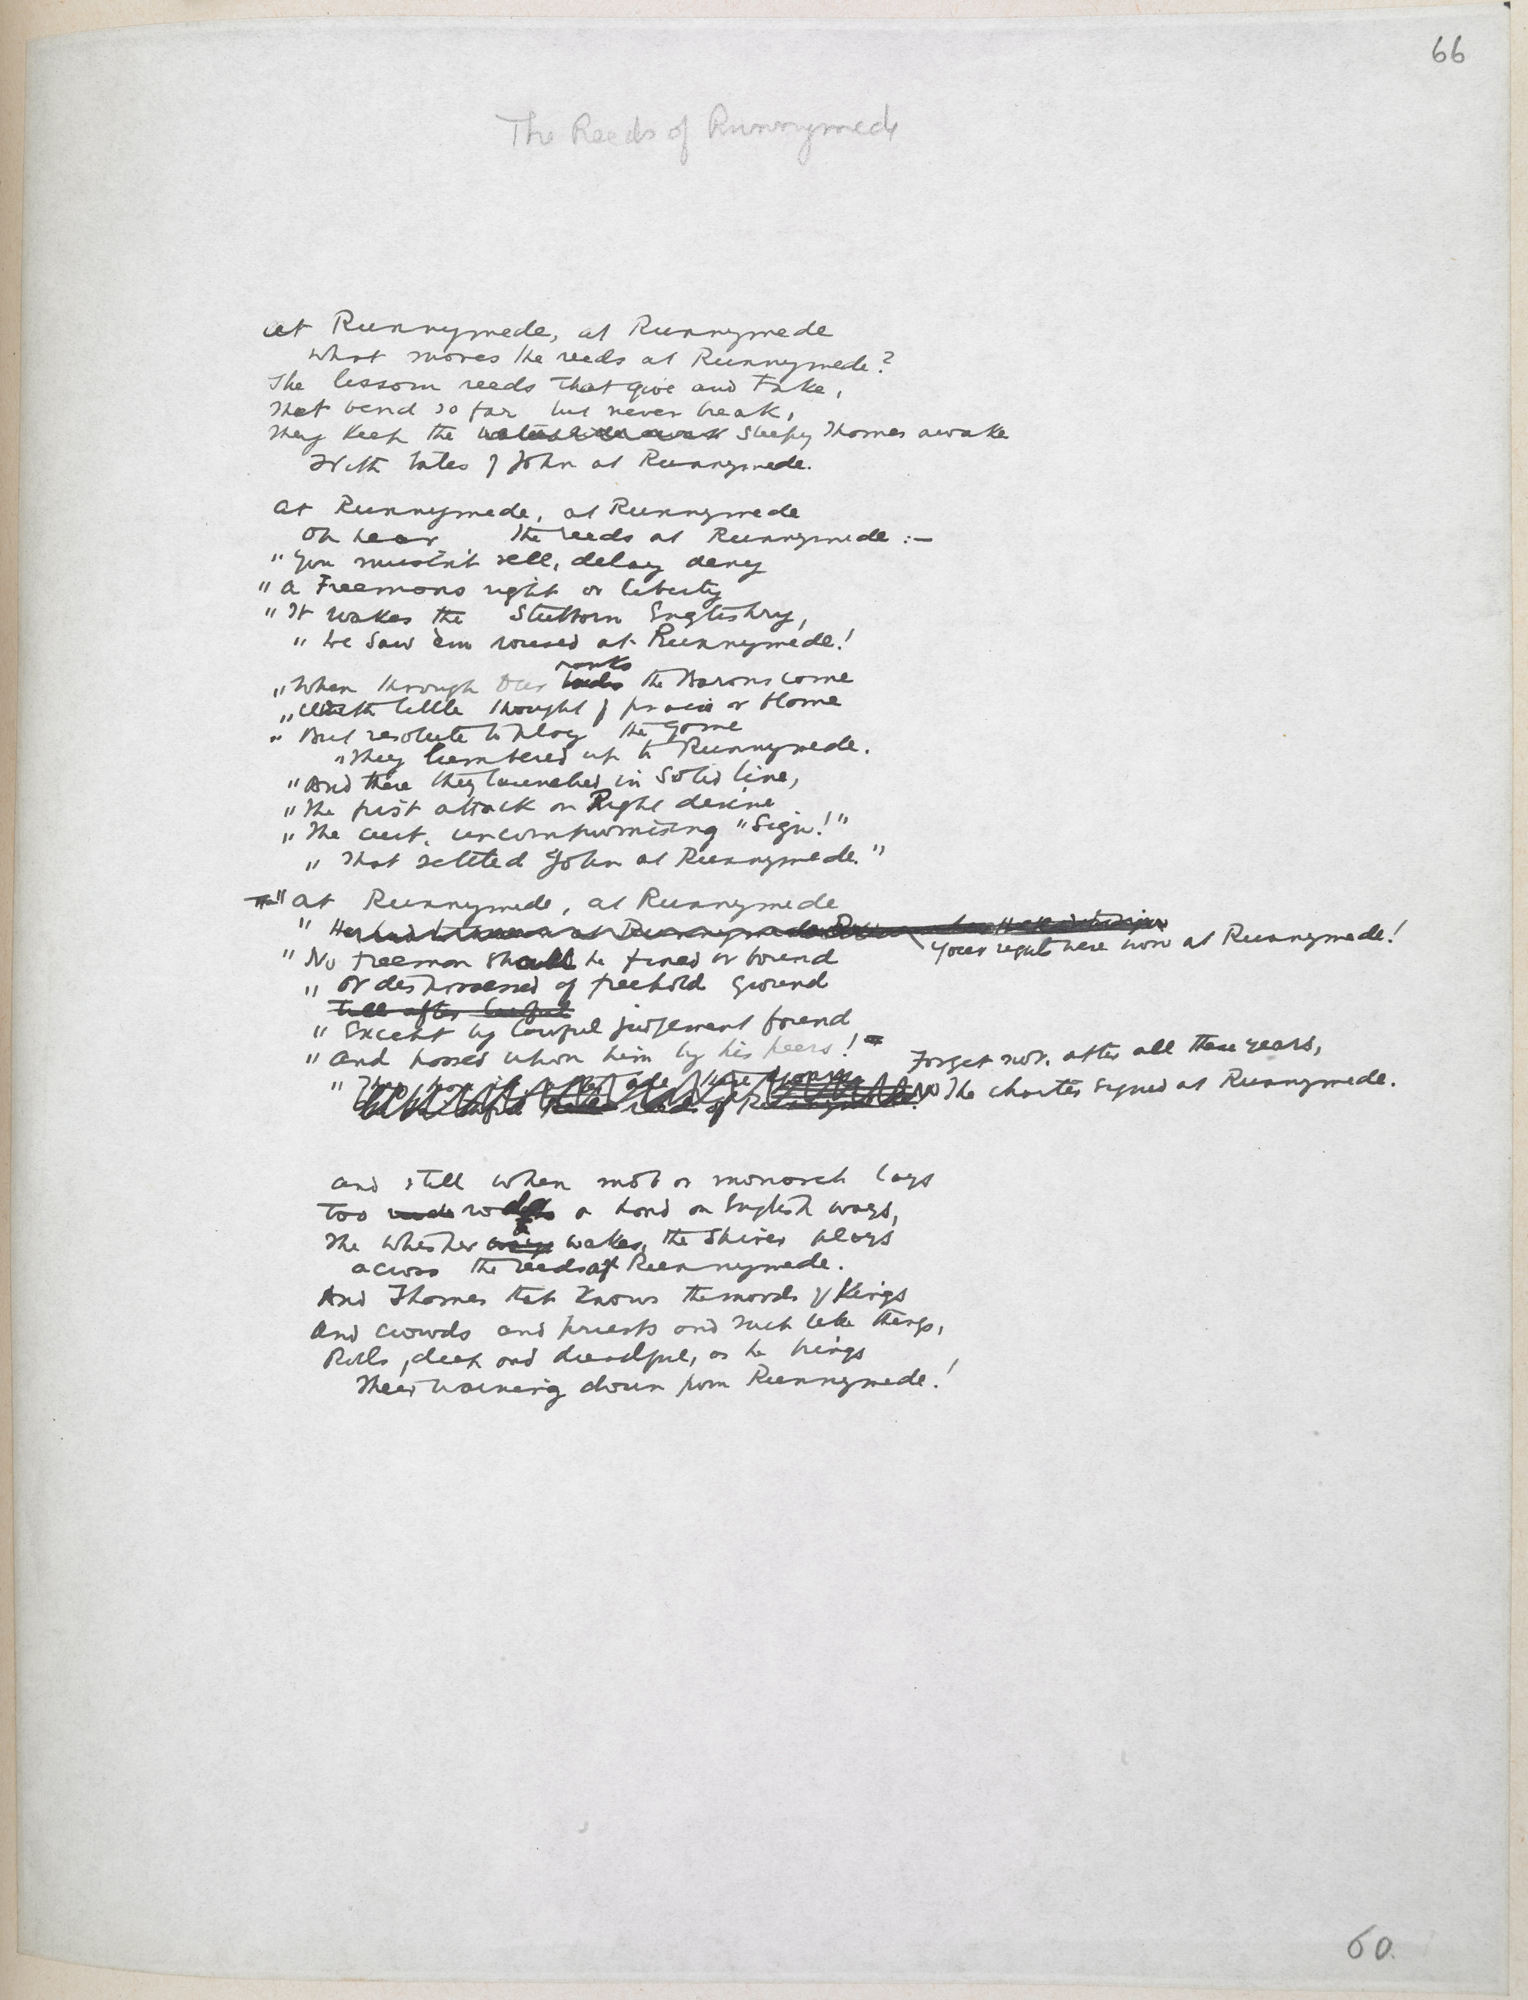 Manuscript of Rudyard Kipling's 'Reeds at Runnymede'